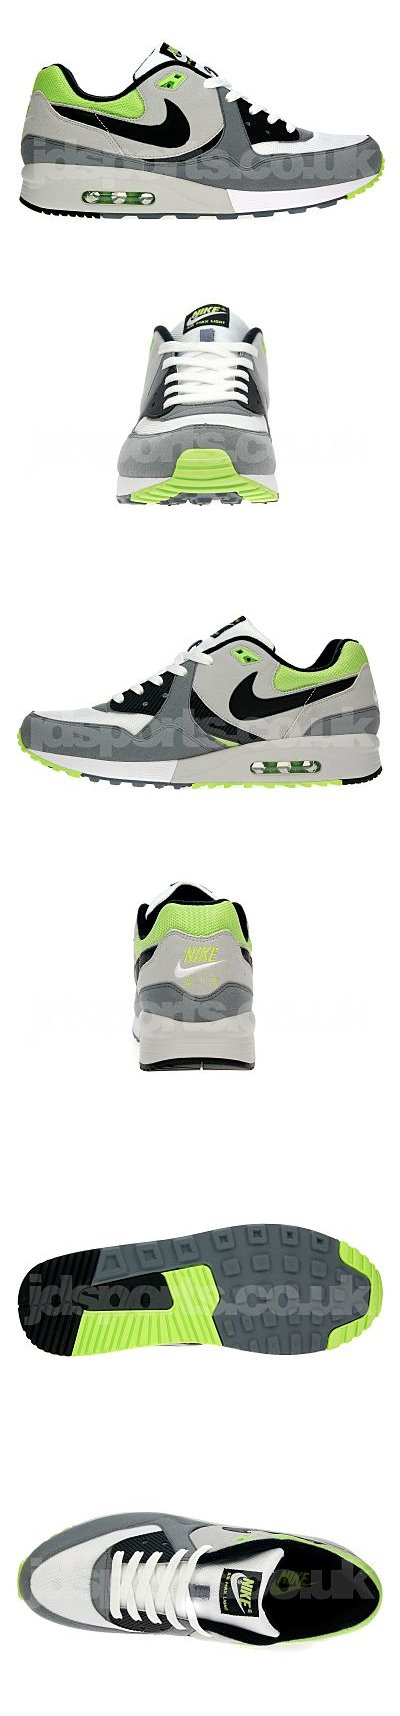 Nike Air Max Light - February 2009